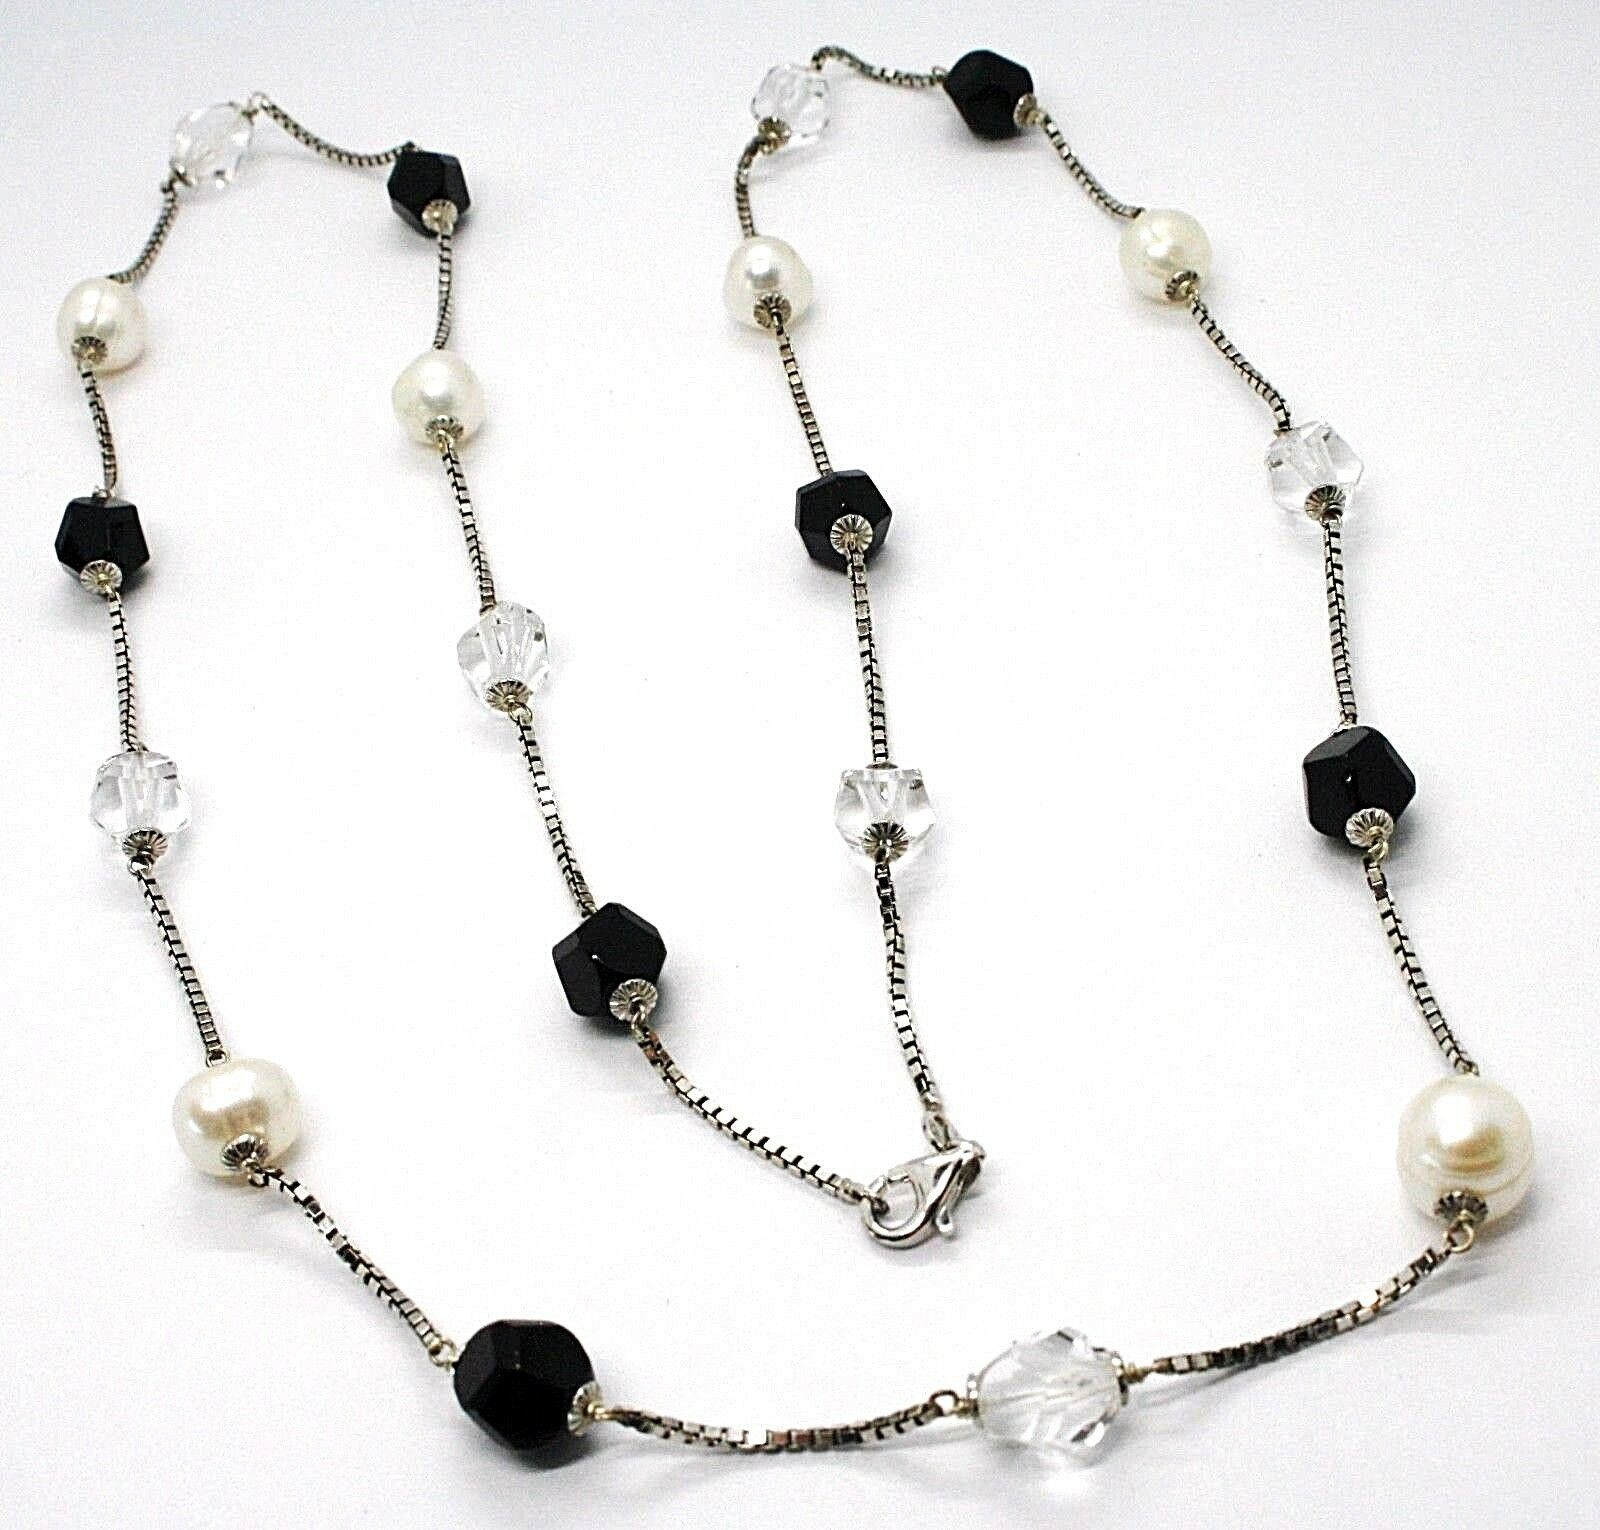 SILVER 925 NECKLACE, PEARLS, NUGGETS BLACK AND TRANSPARENT, LENGTH 85 CM